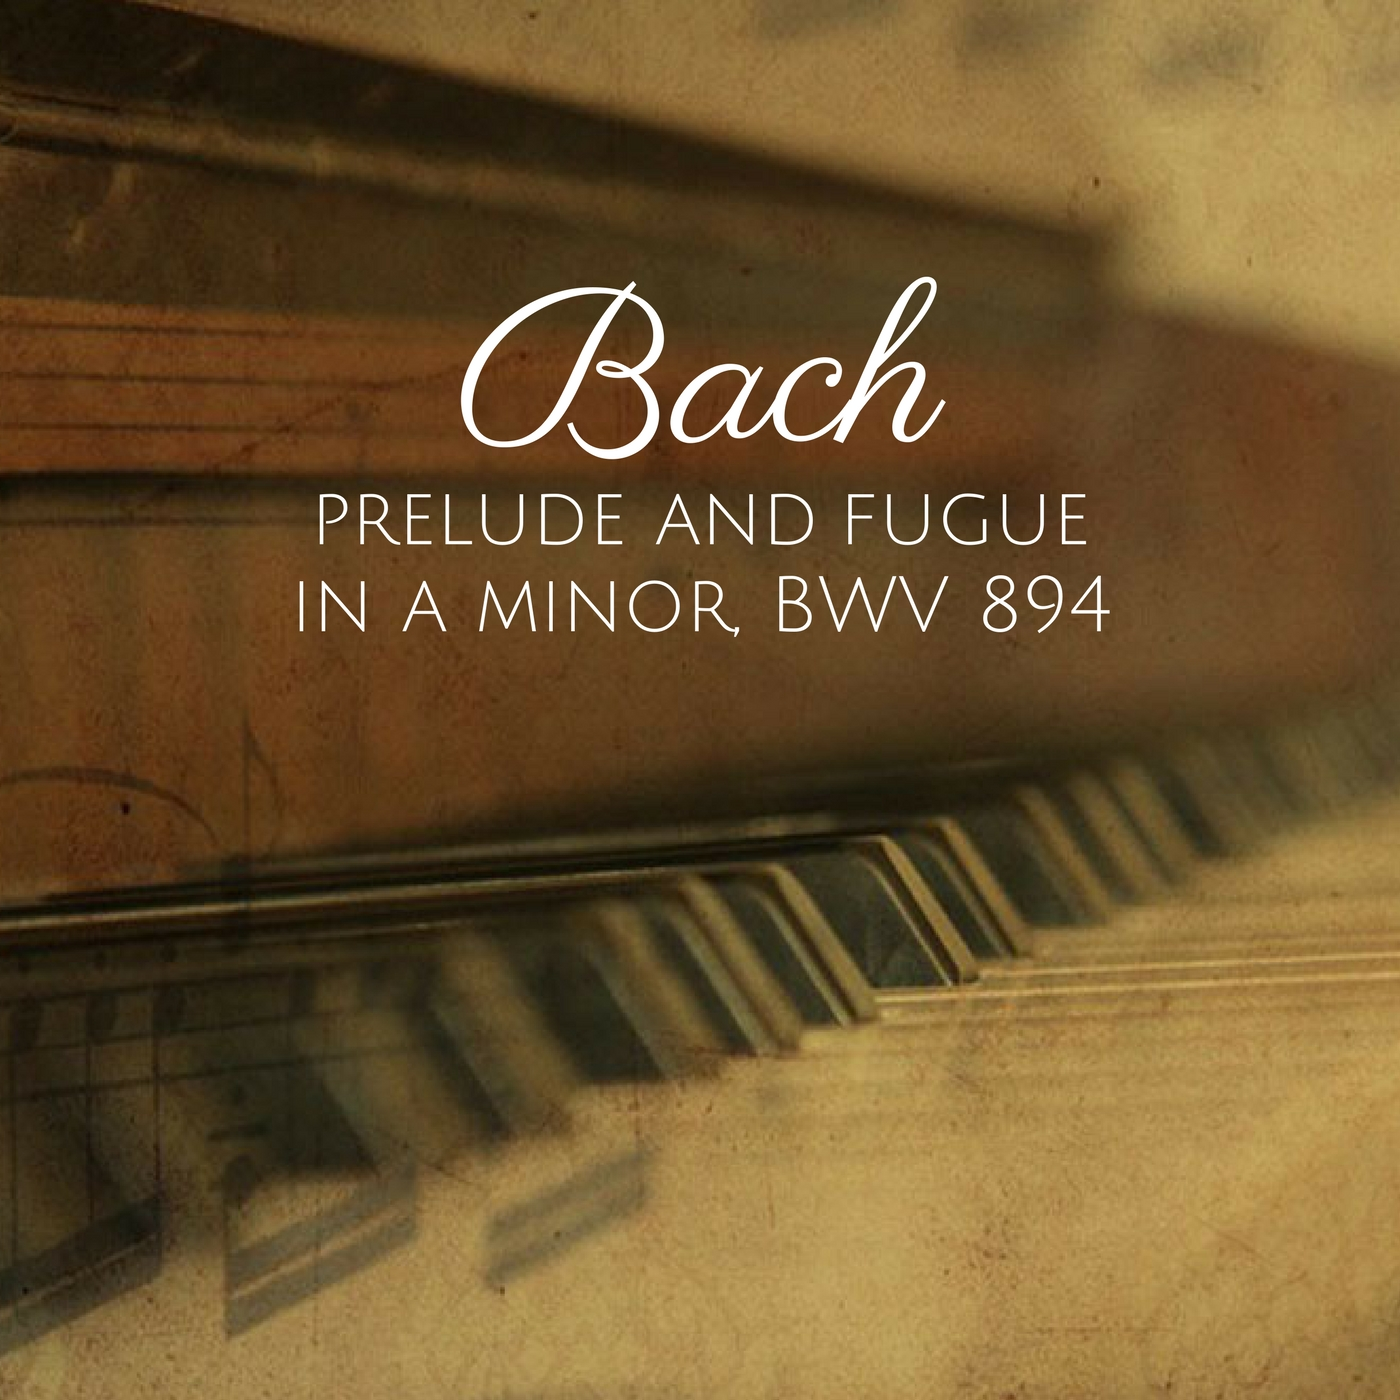 Bach: Prelude and Fugue in A minor, BWV 894